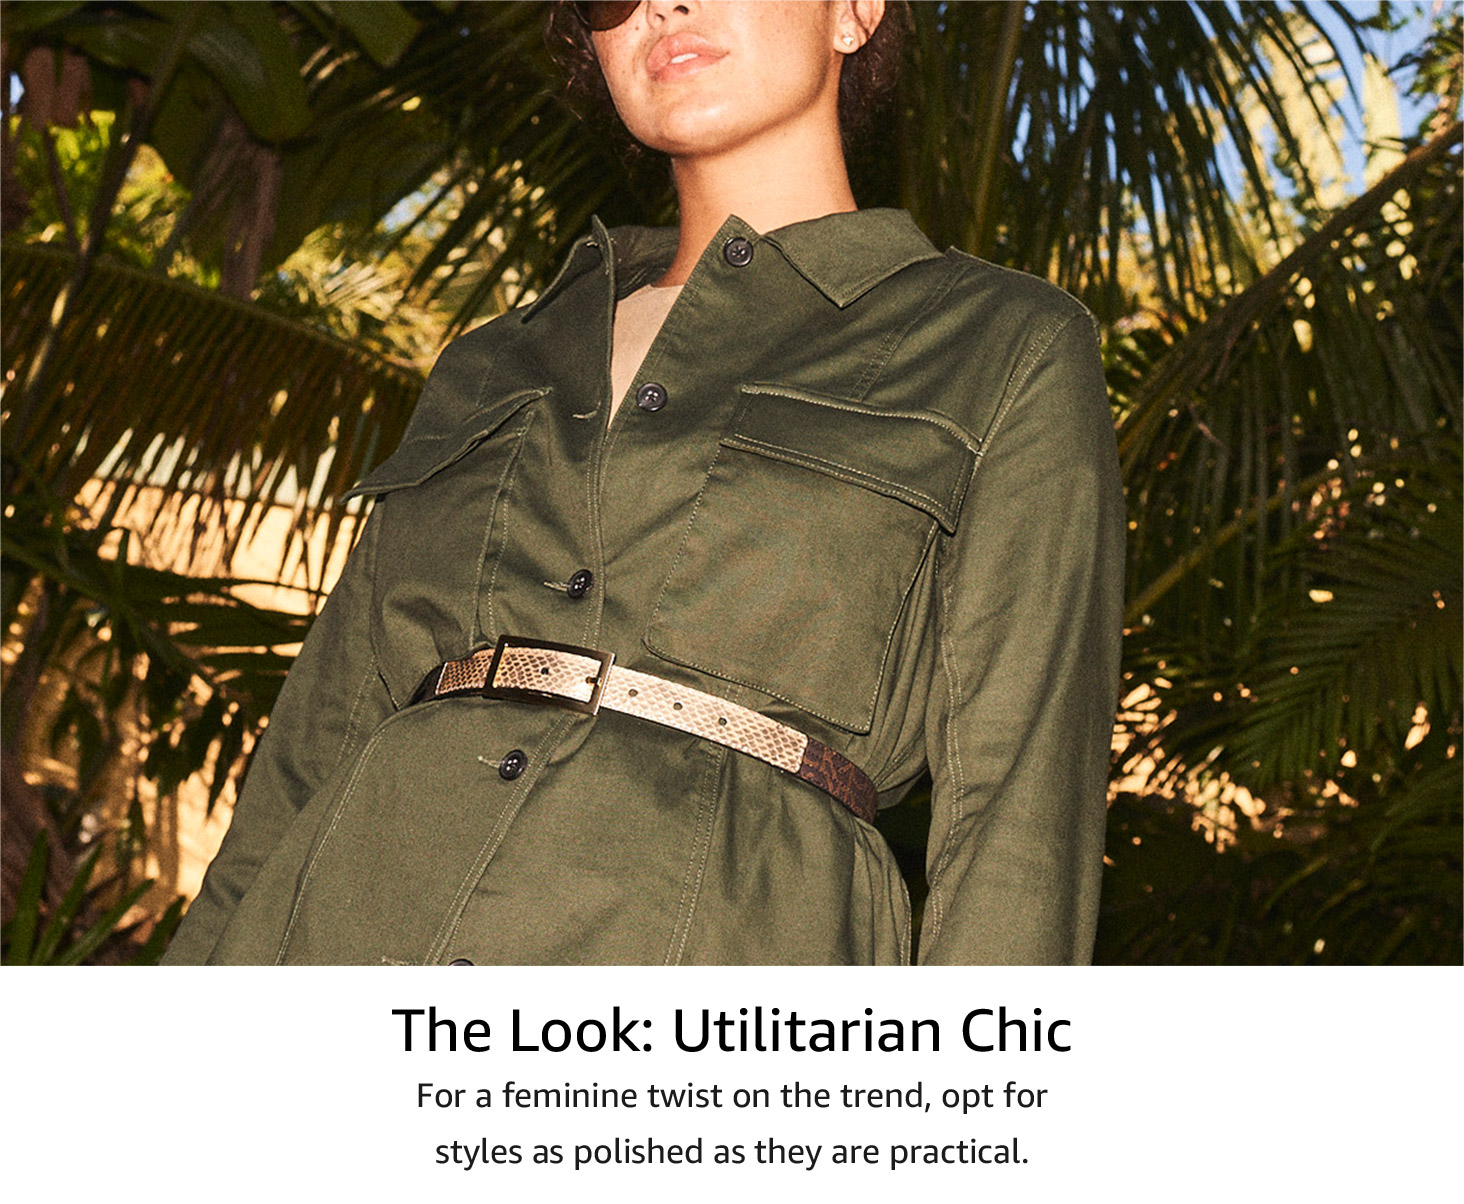 The look: utilitarian chic